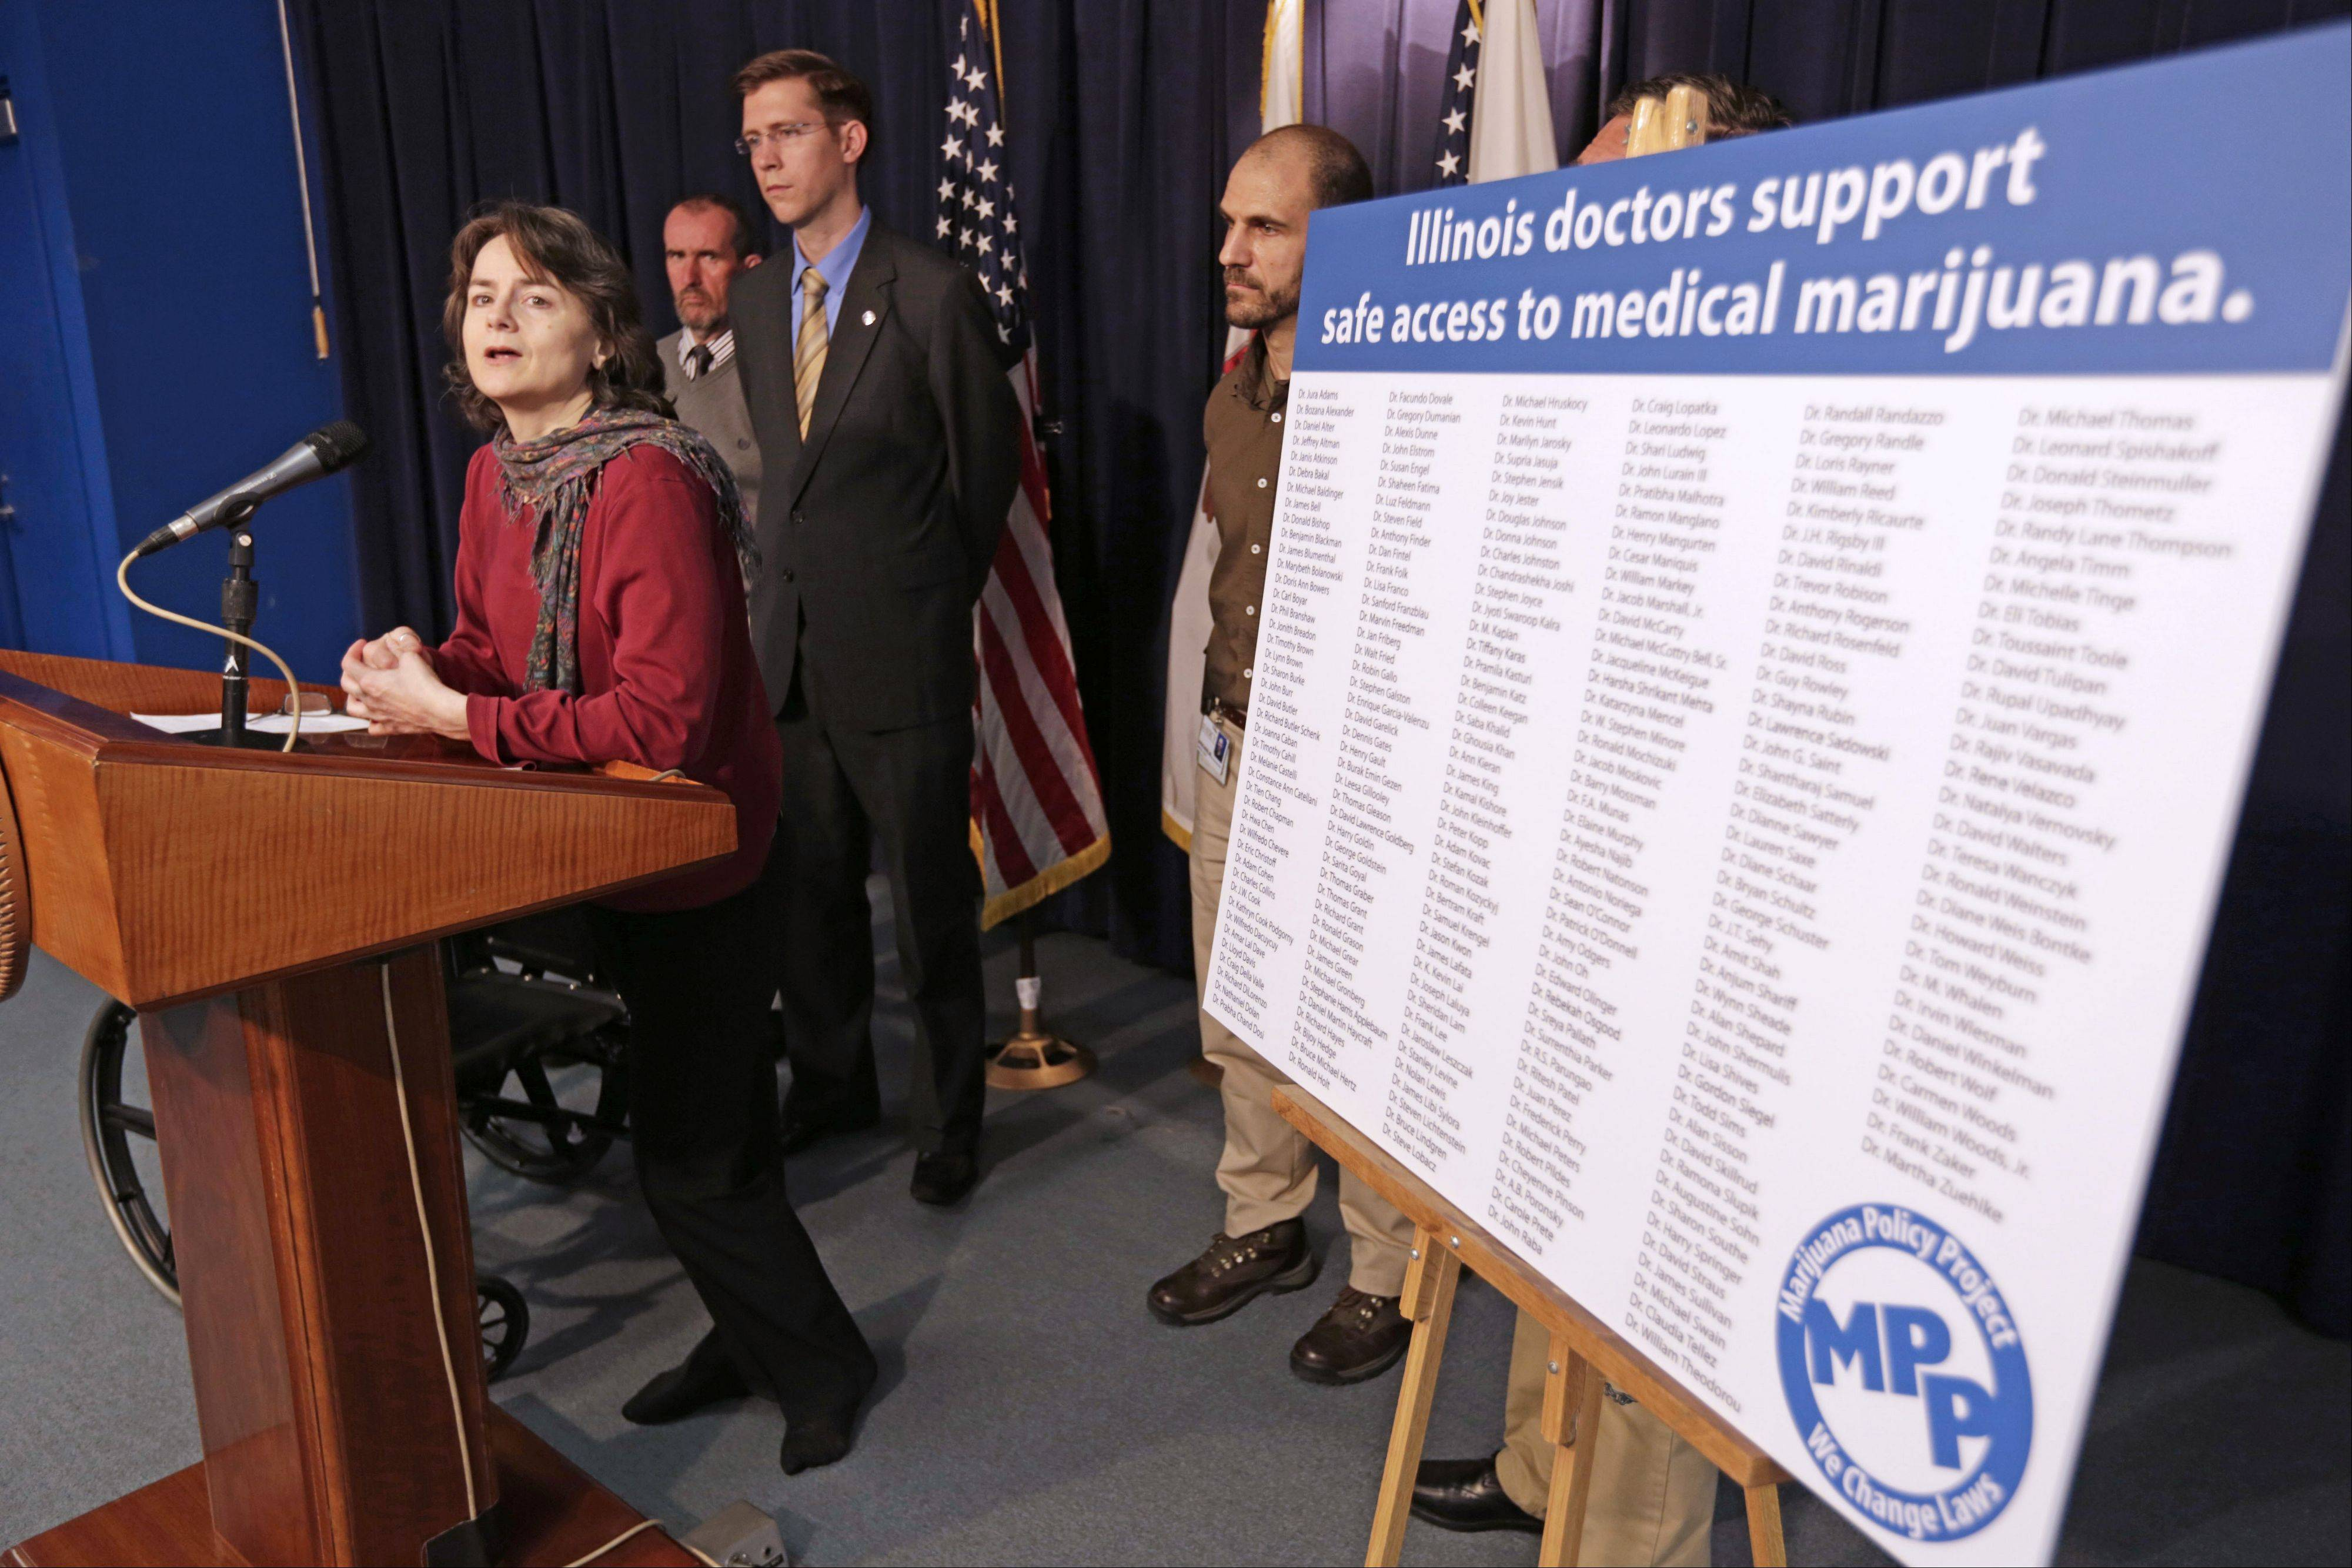 Julie Falco of Chicago speaks at a news conference held by the Marijuana Policy Project on Tuesday in Chicago. Falco uses marijuana to treat multiple sclerosis symptoms and says she and other patients shouldn�t be considered criminals for trying to ease their suffering.